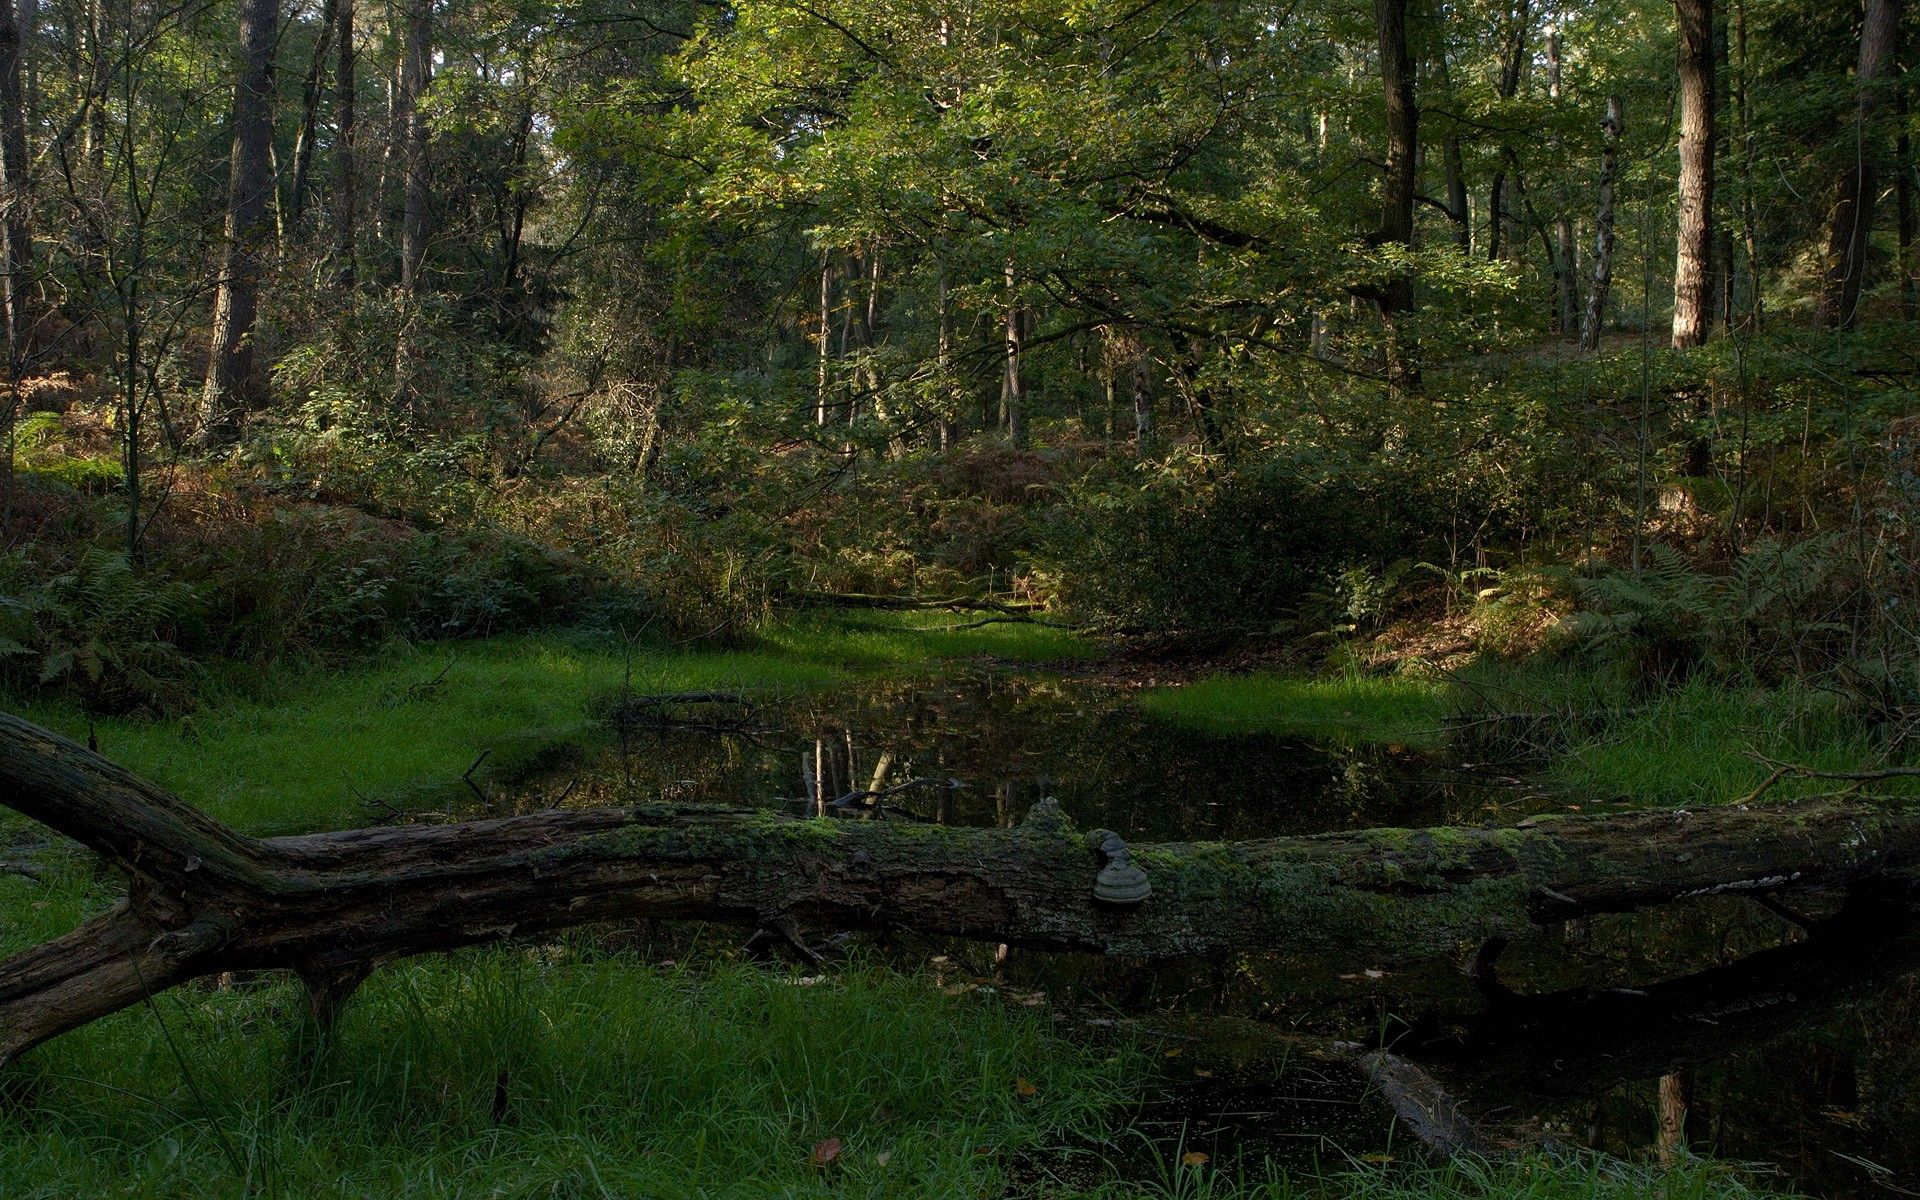 111306 download wallpaper Nature, Forest, Wood, Tree, Moss, Lake, Shadow, Cool, Coolness, Dead screensavers and pictures for free